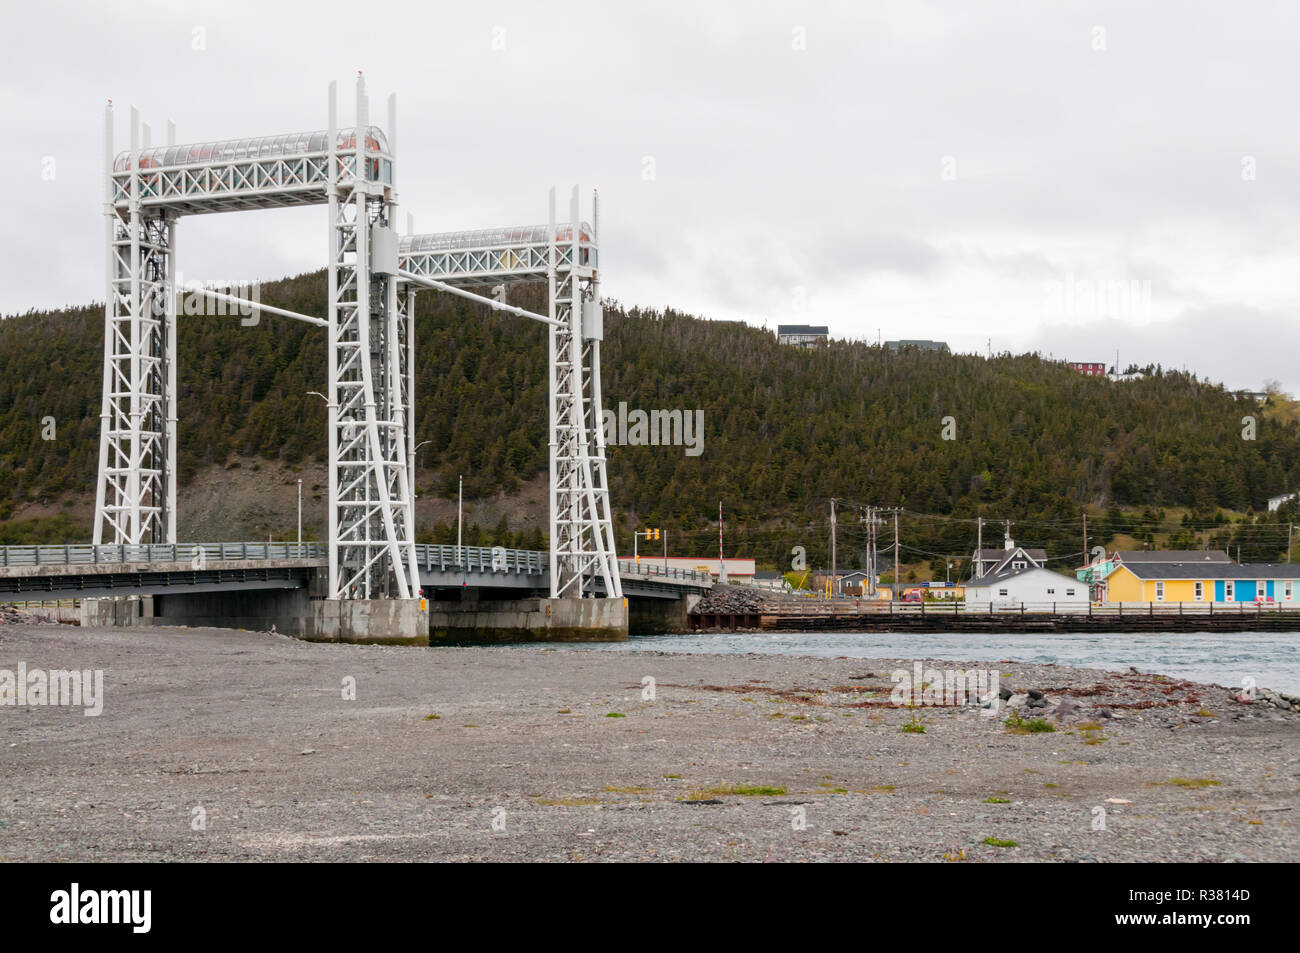 The Sir Ambrose Shea Lift Bridge over The Gut at Placentia, Newfoundland. - Stock Image